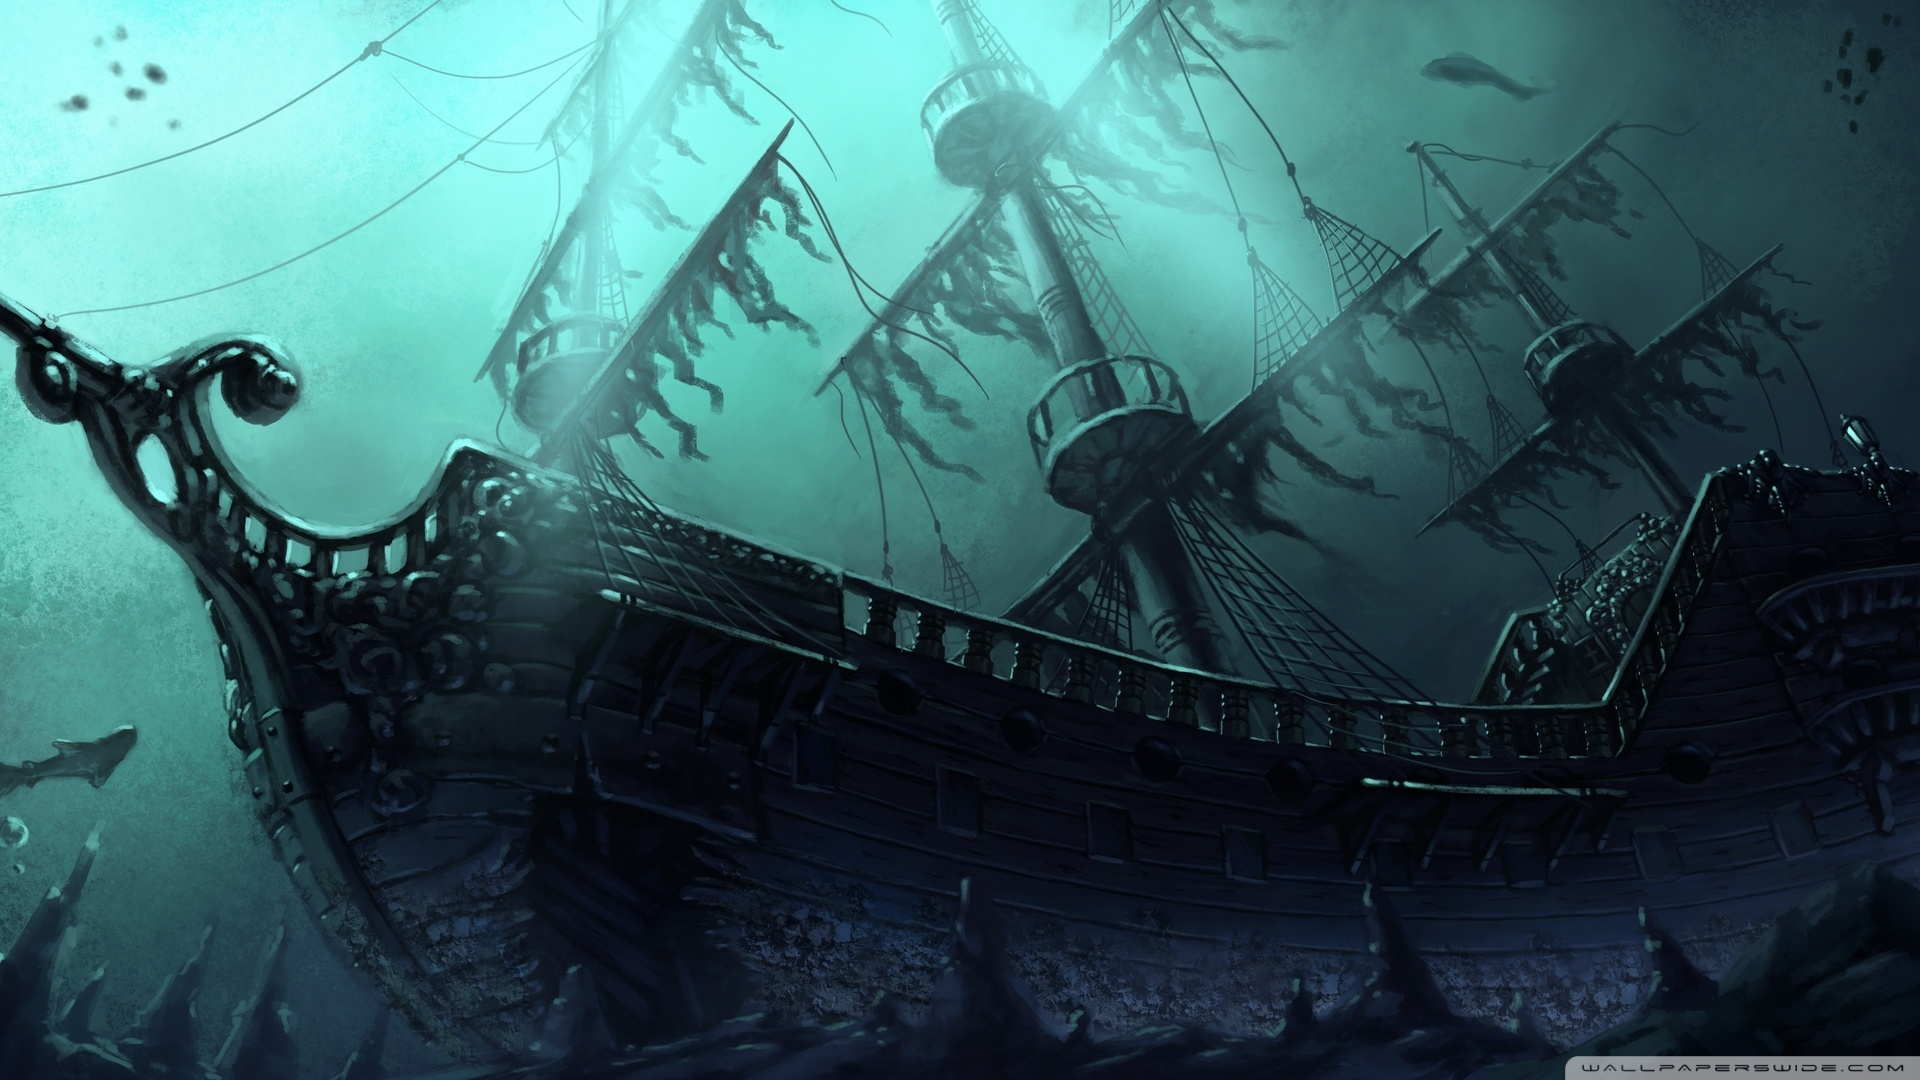 Free Ghost Pirate Ship Wallpapers Hd « Long Wallpapers 1920x1080